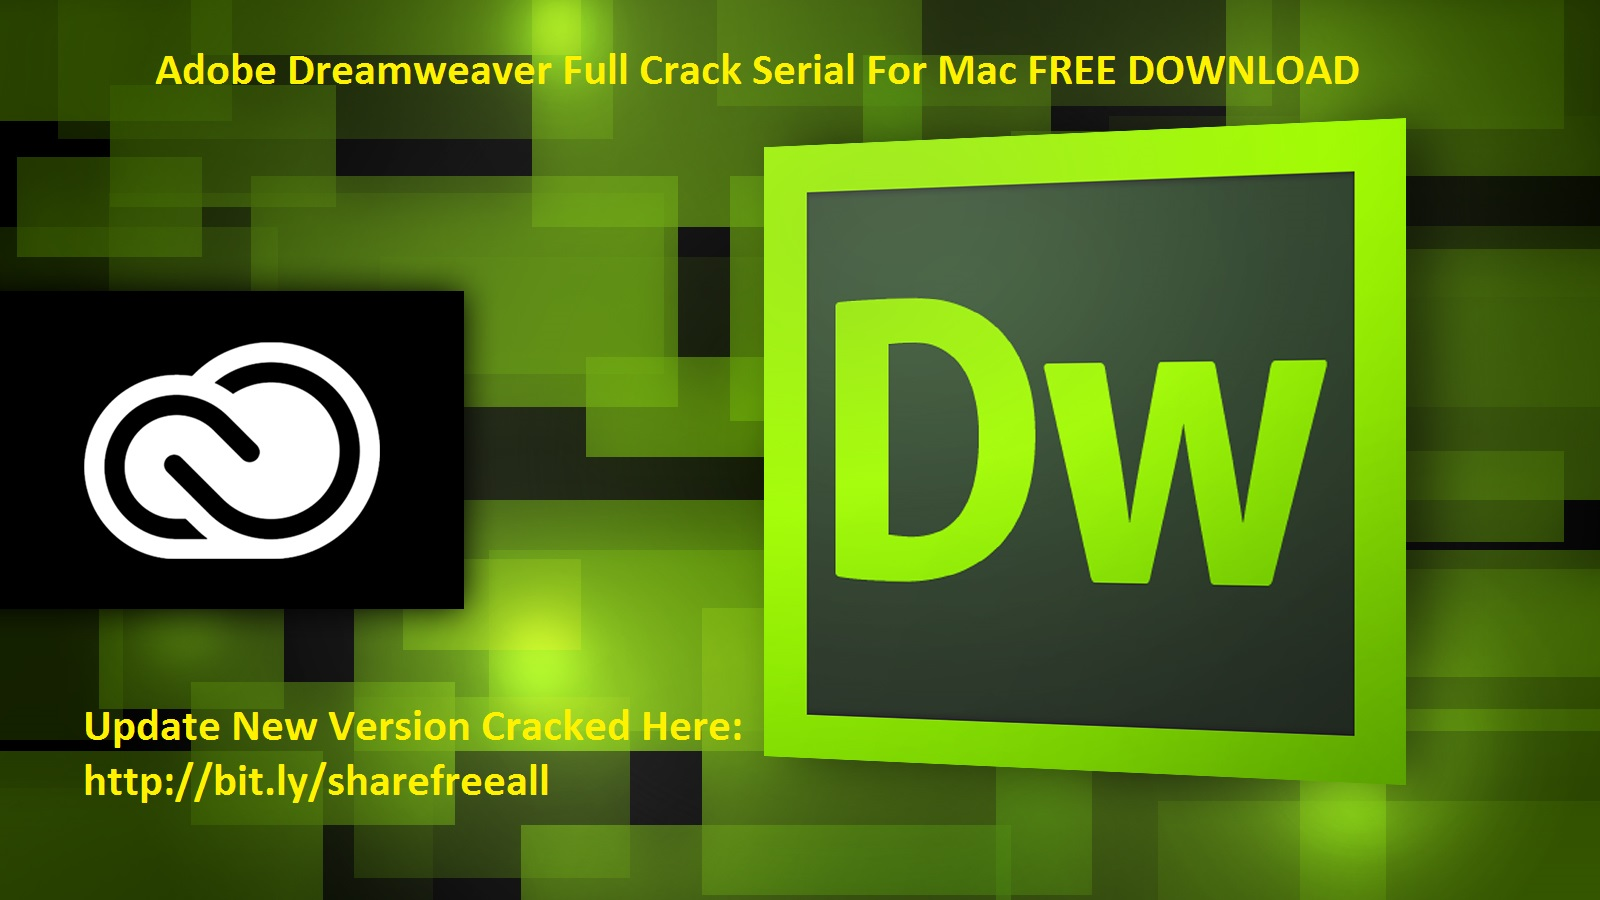 Adobe Dreamweaver CC 13.0 Serial Number Keygen For Mac OS X